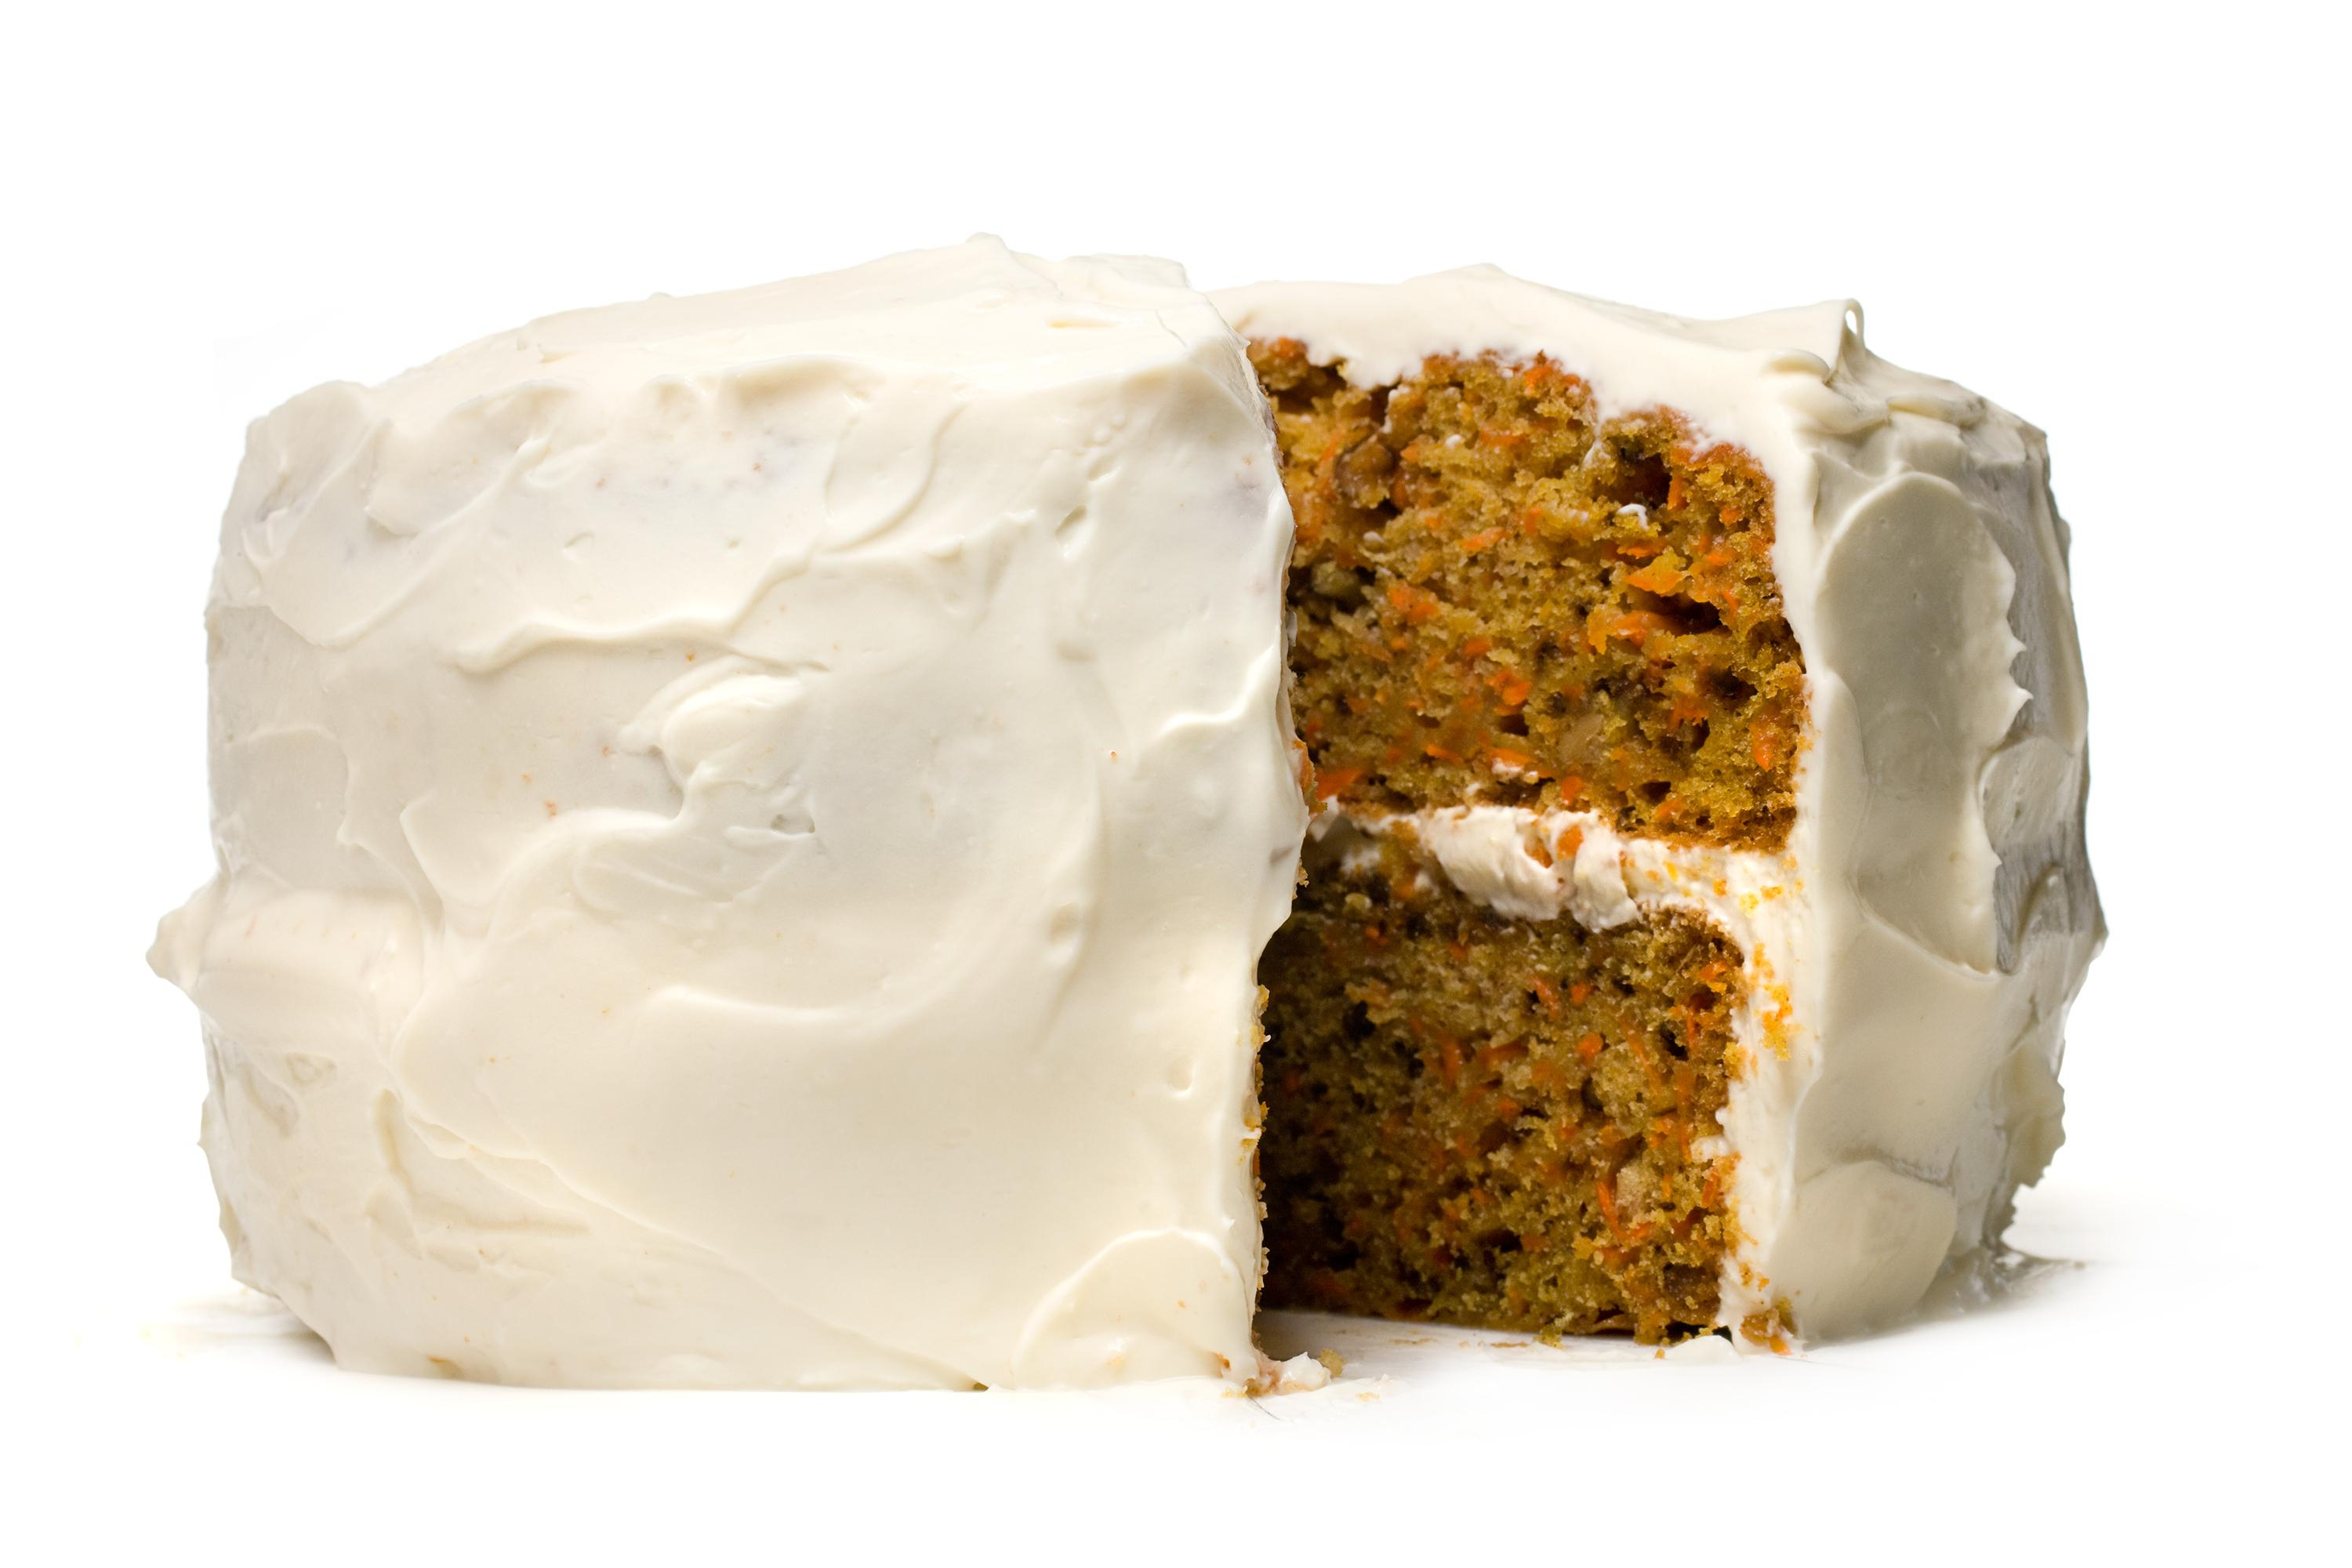 Carrot Cake Birthday Cake Cardamom Spiced Carrot Cake With Whipped Cream Cheese Frosting